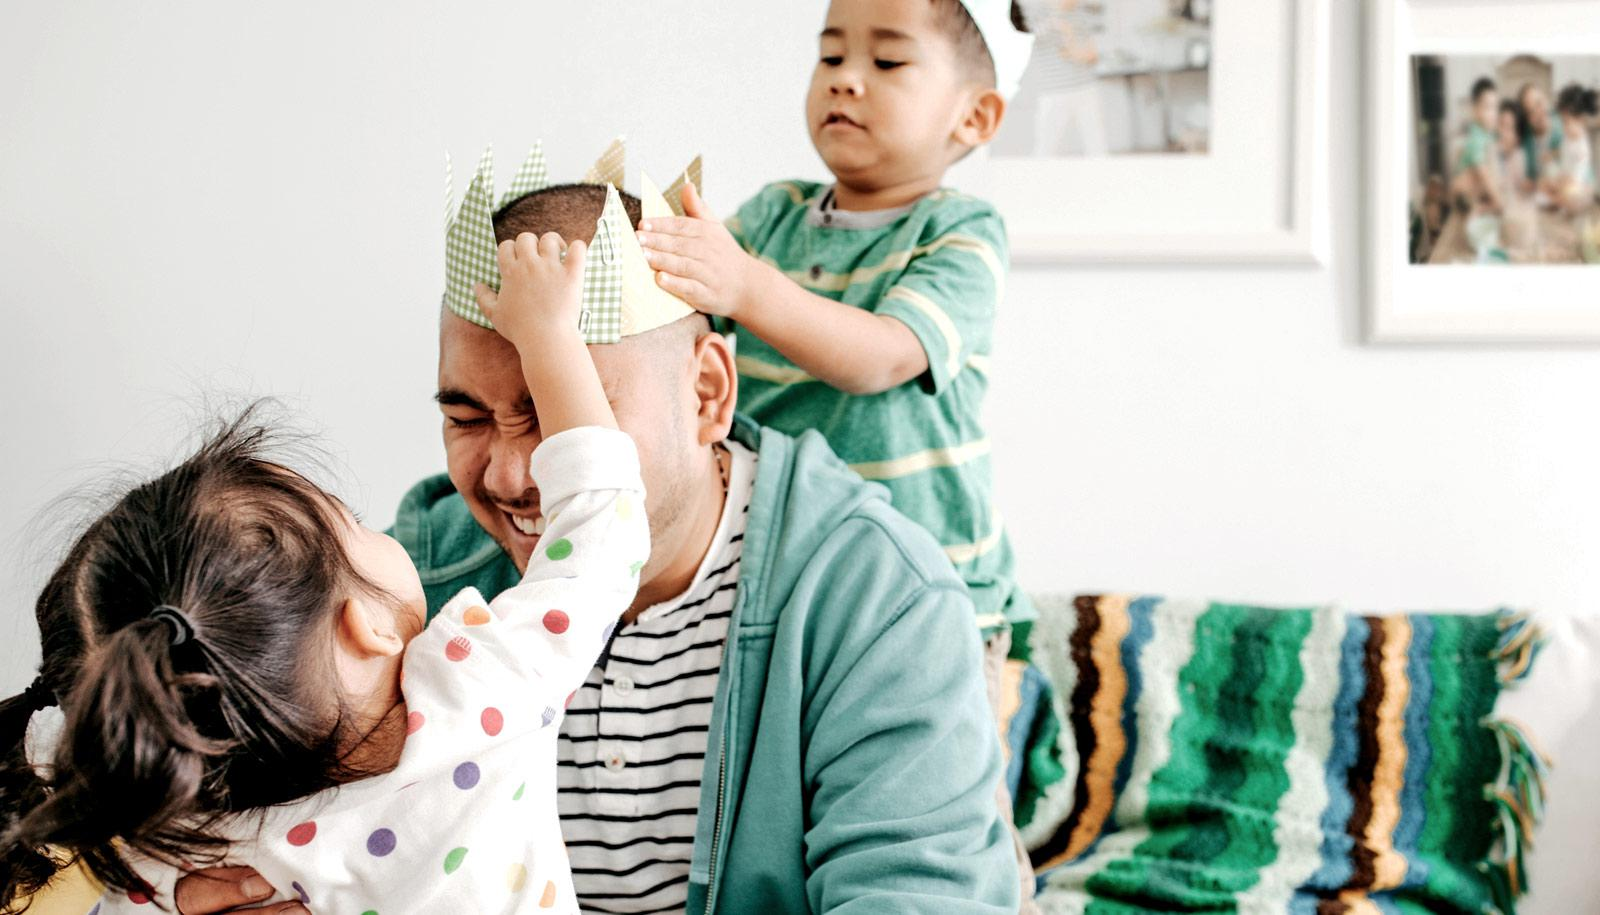 father's day - two toddlers put crown on dad's head